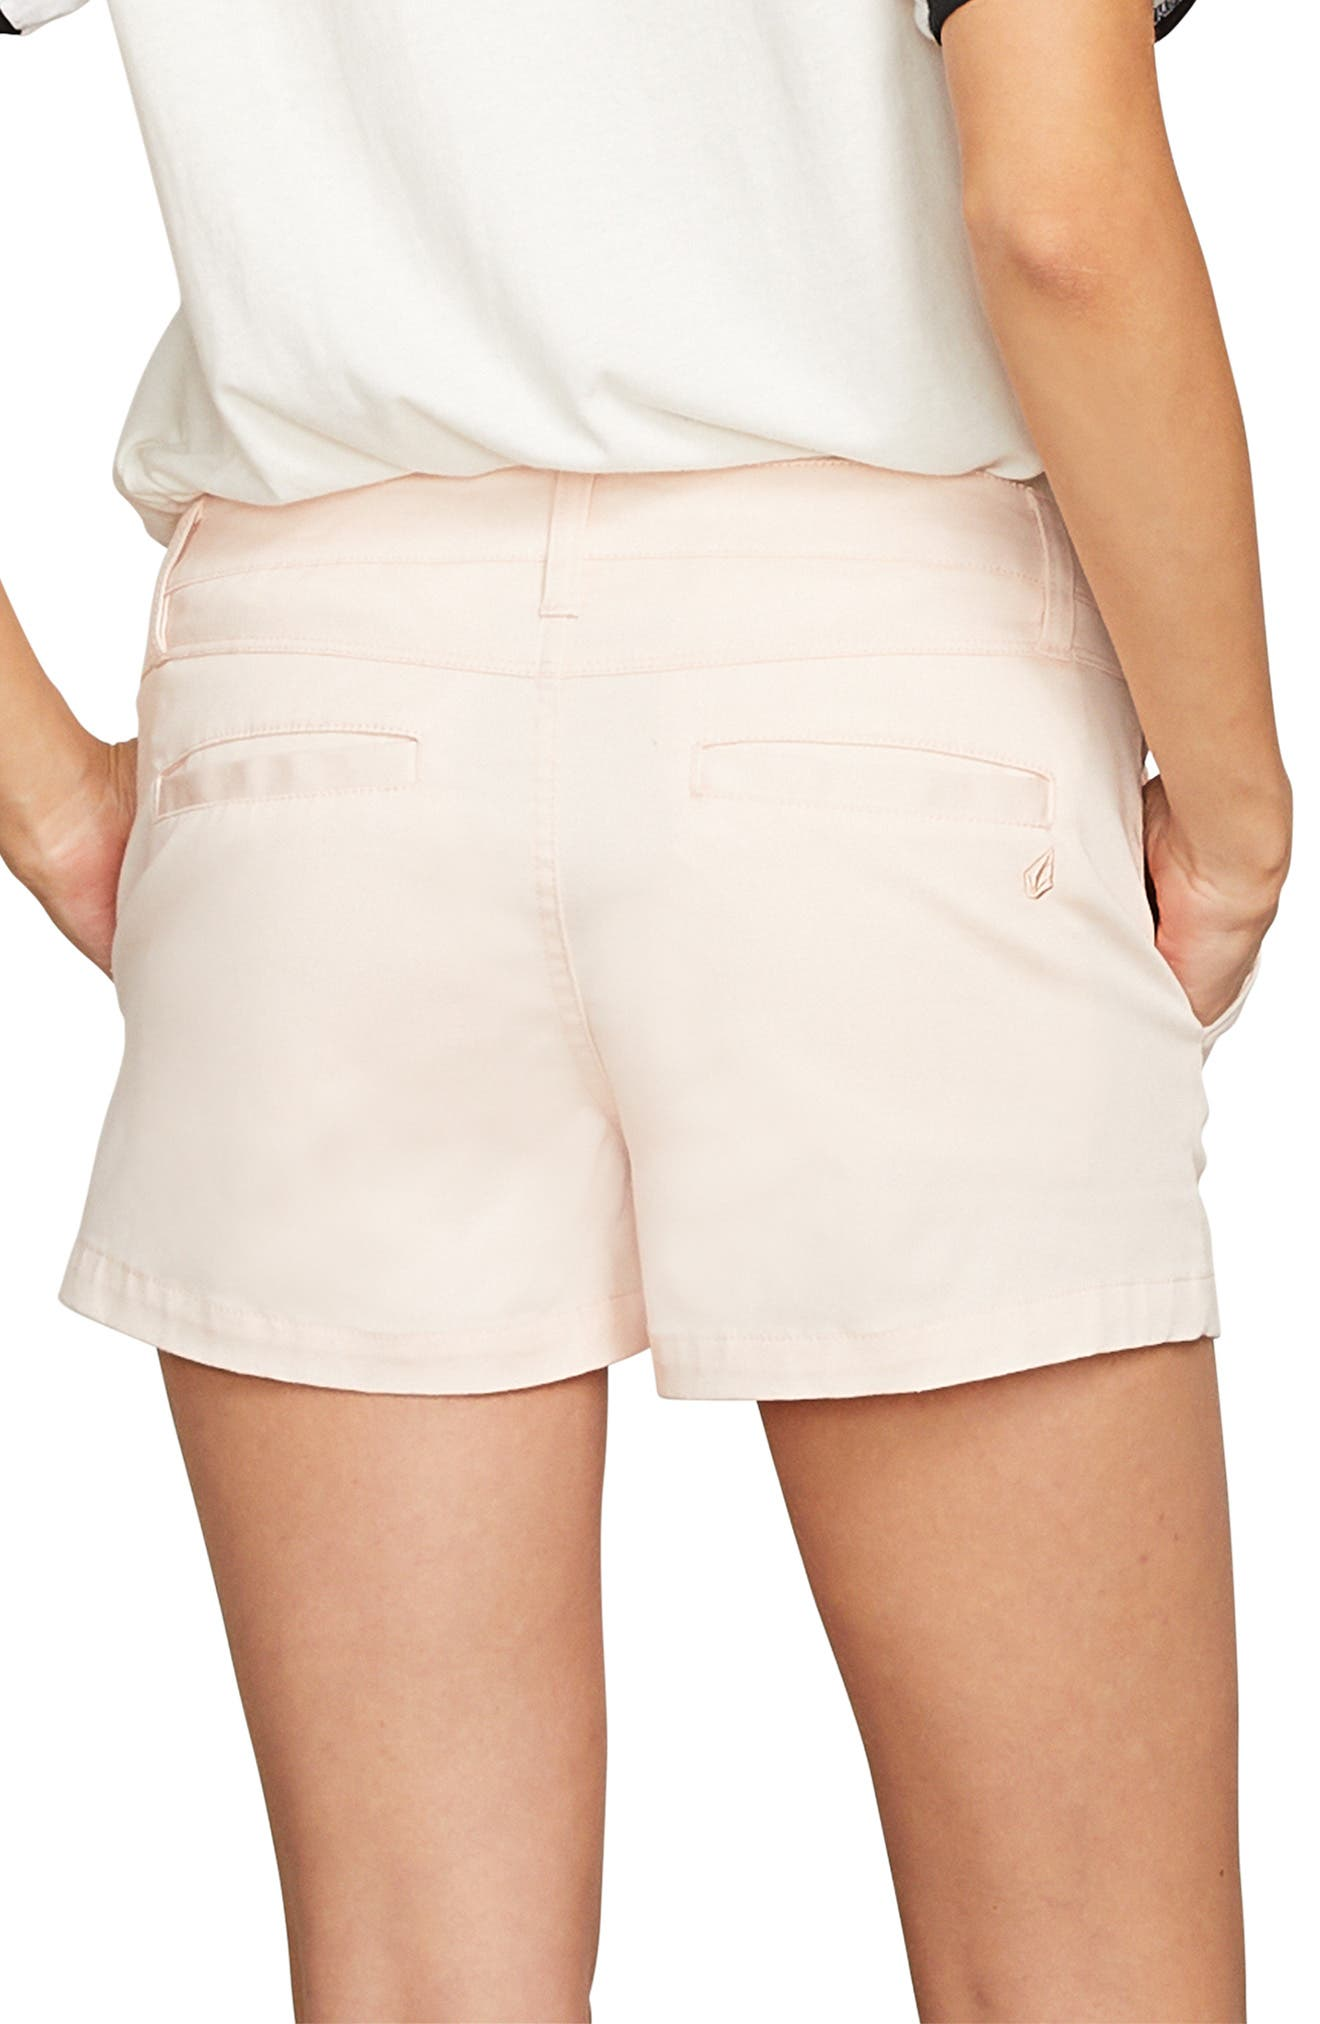 Frochickie Chino Shorts,                             Alternate thumbnail 2, color,                             CLOUD PINK